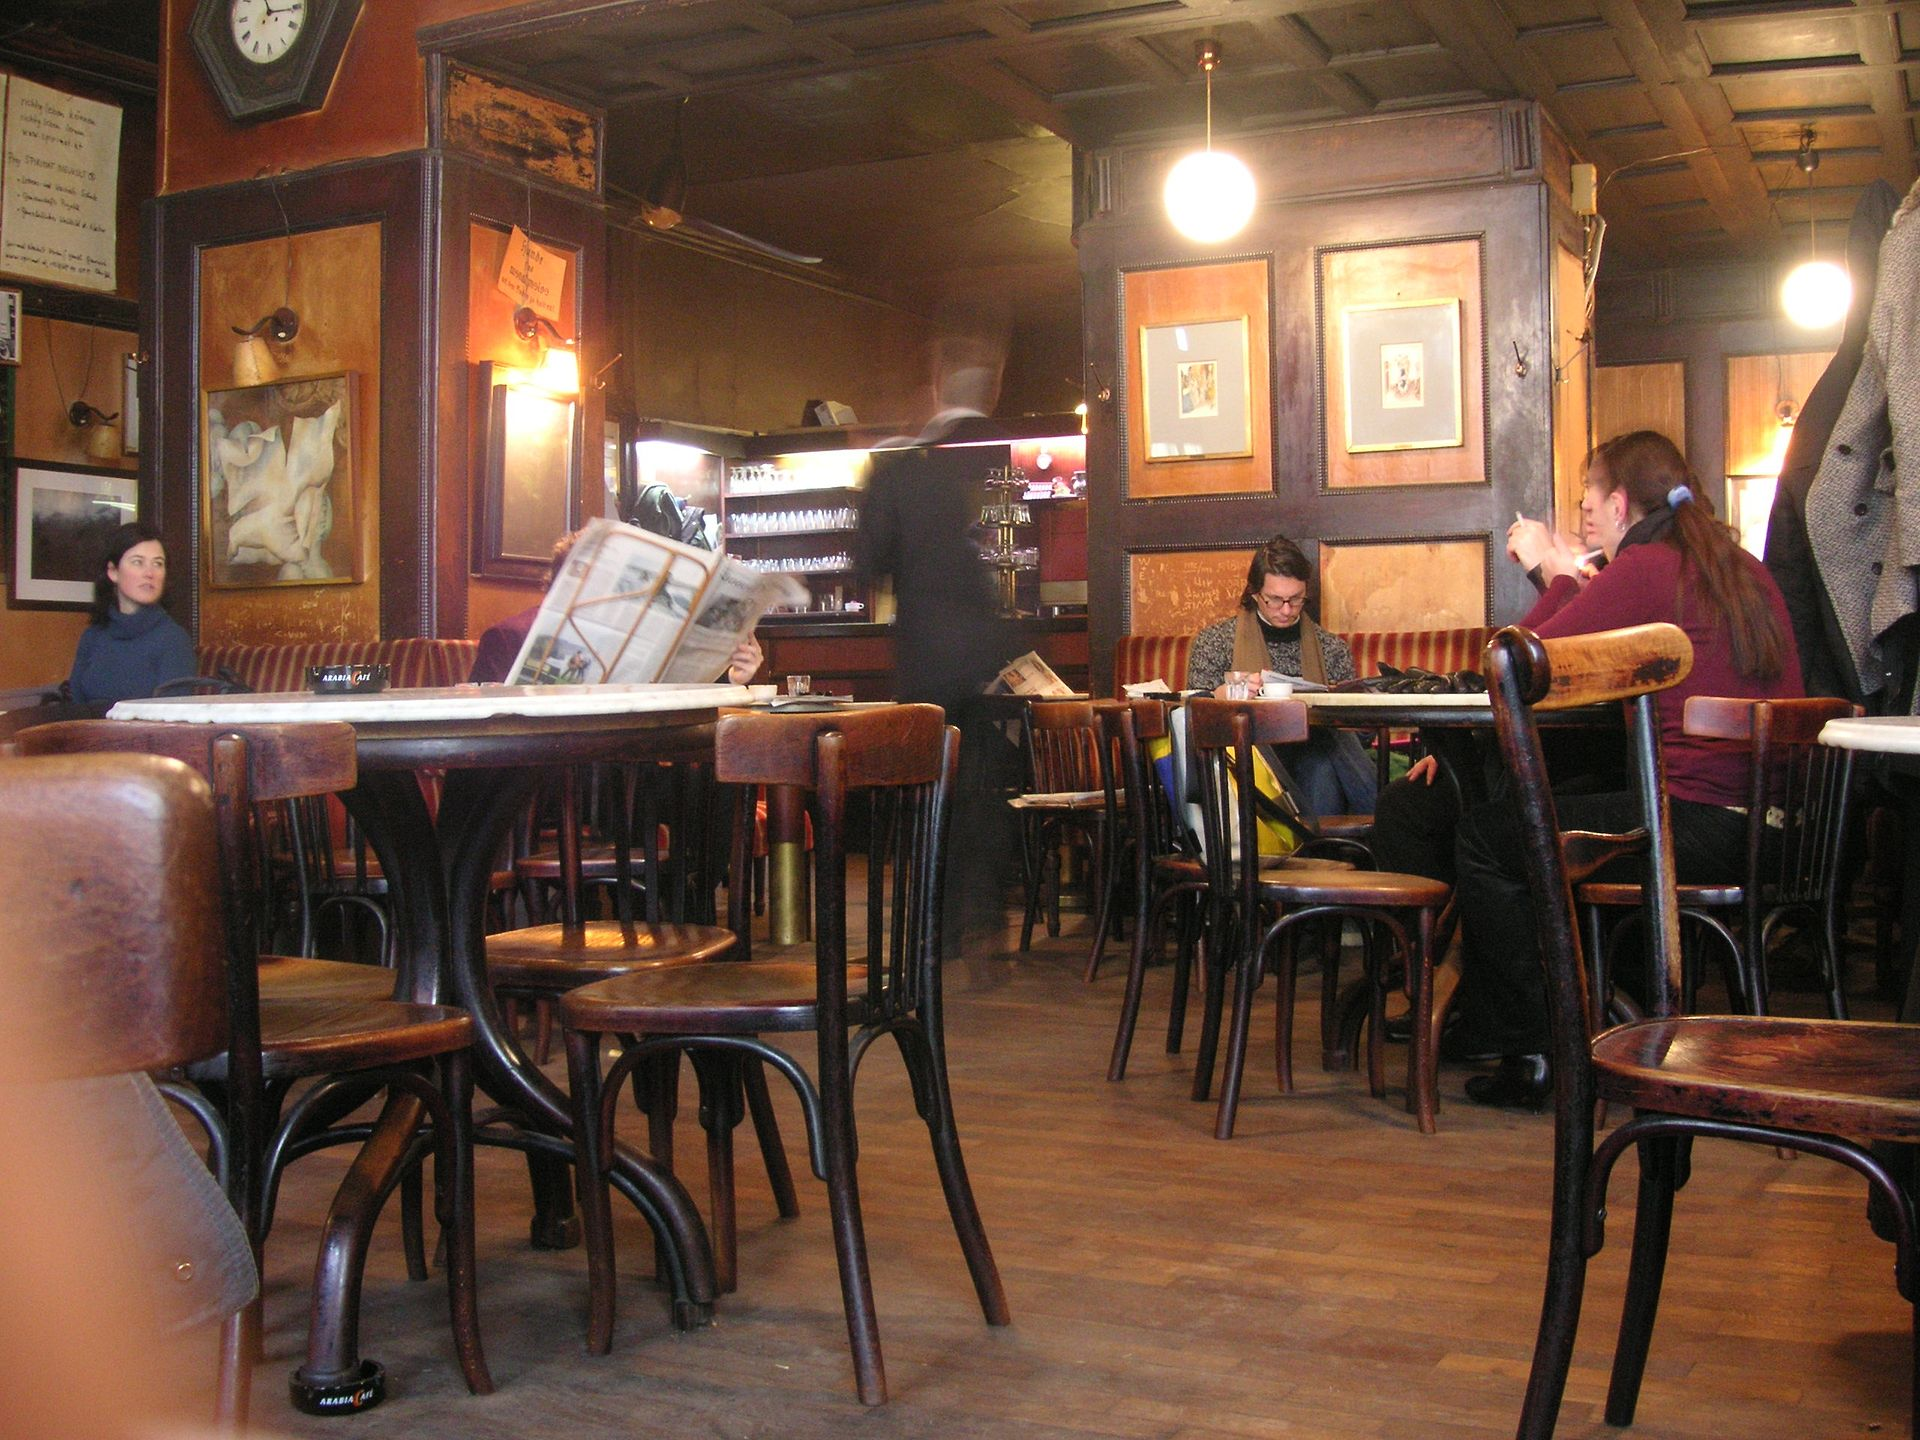 Quiet Cafes To Study In Nyc Lower East Side